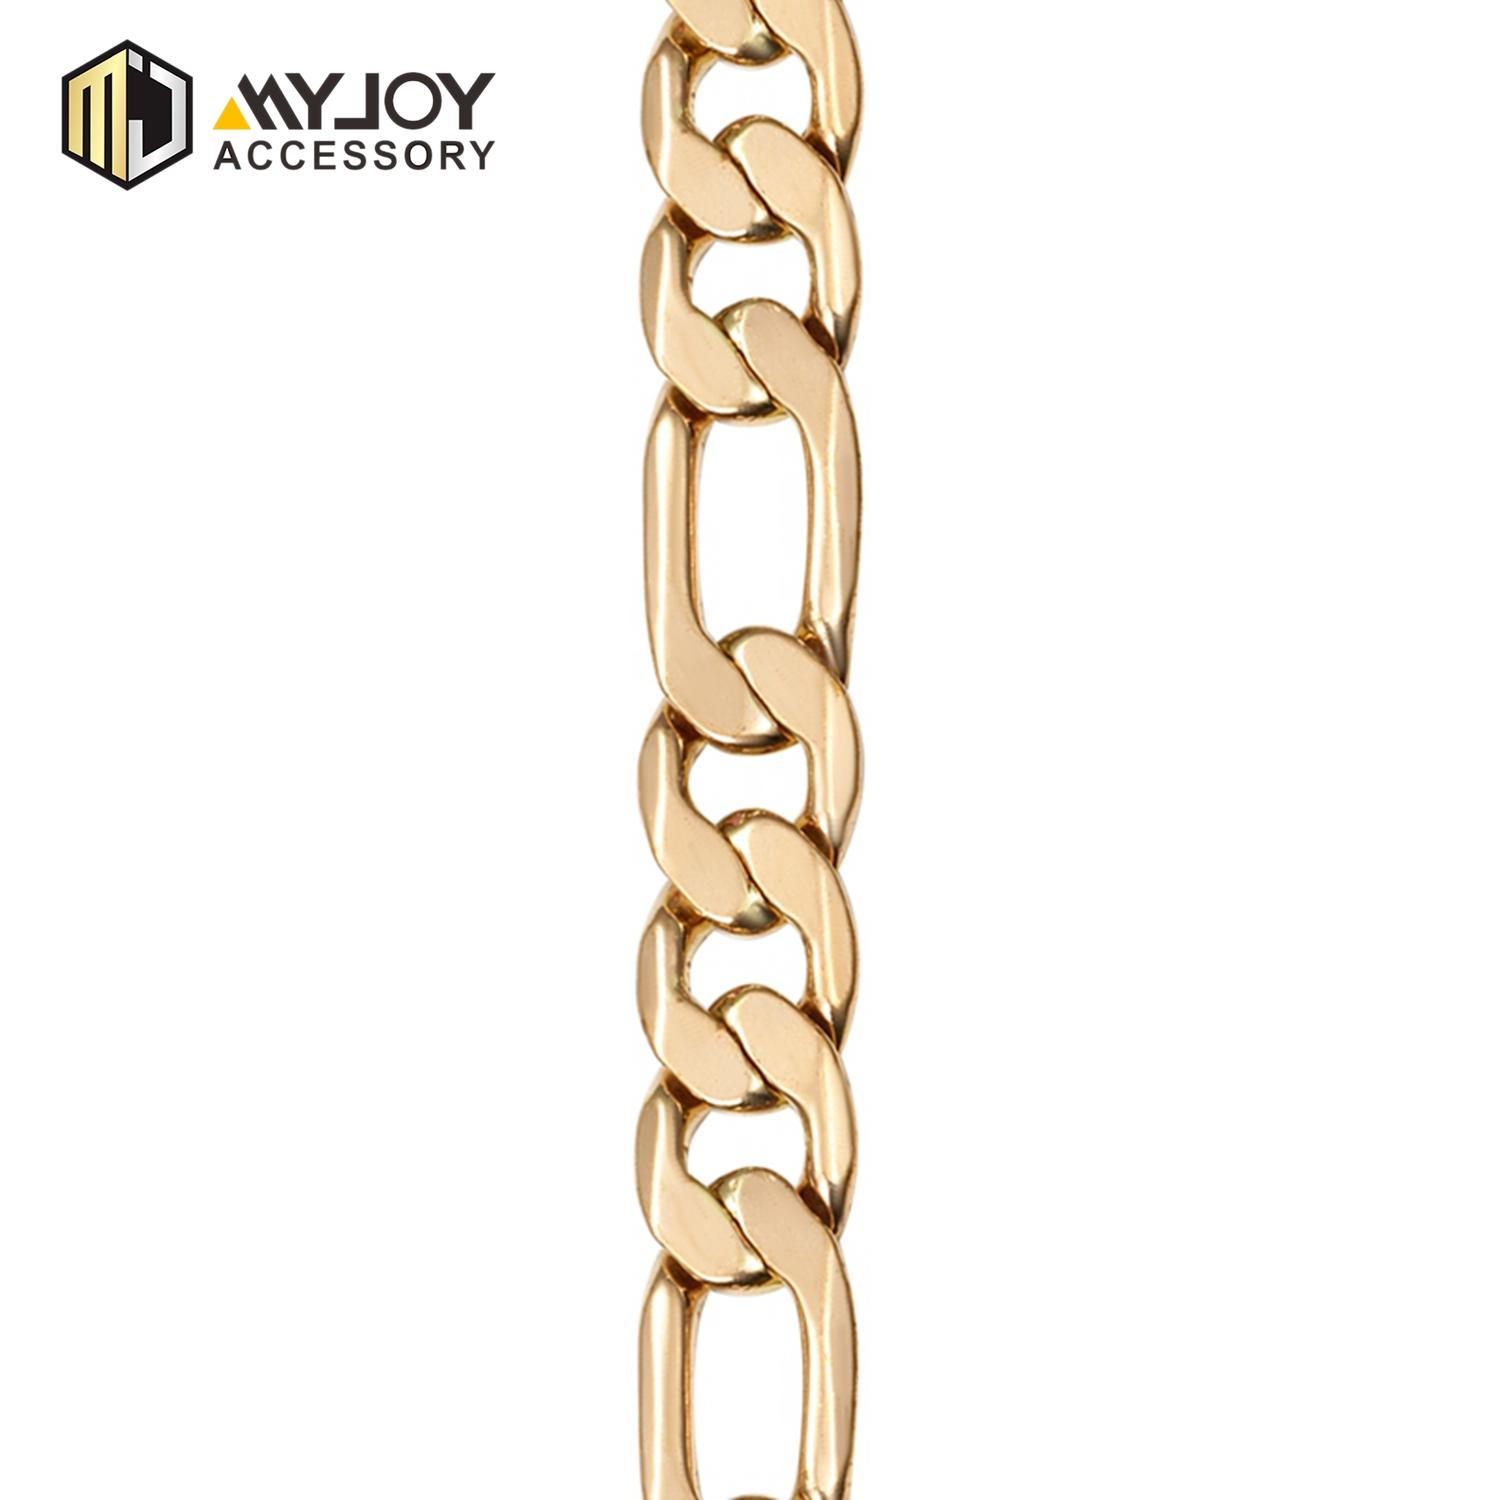 MYJOY Custom handbag chain strap stylish for handbag-2